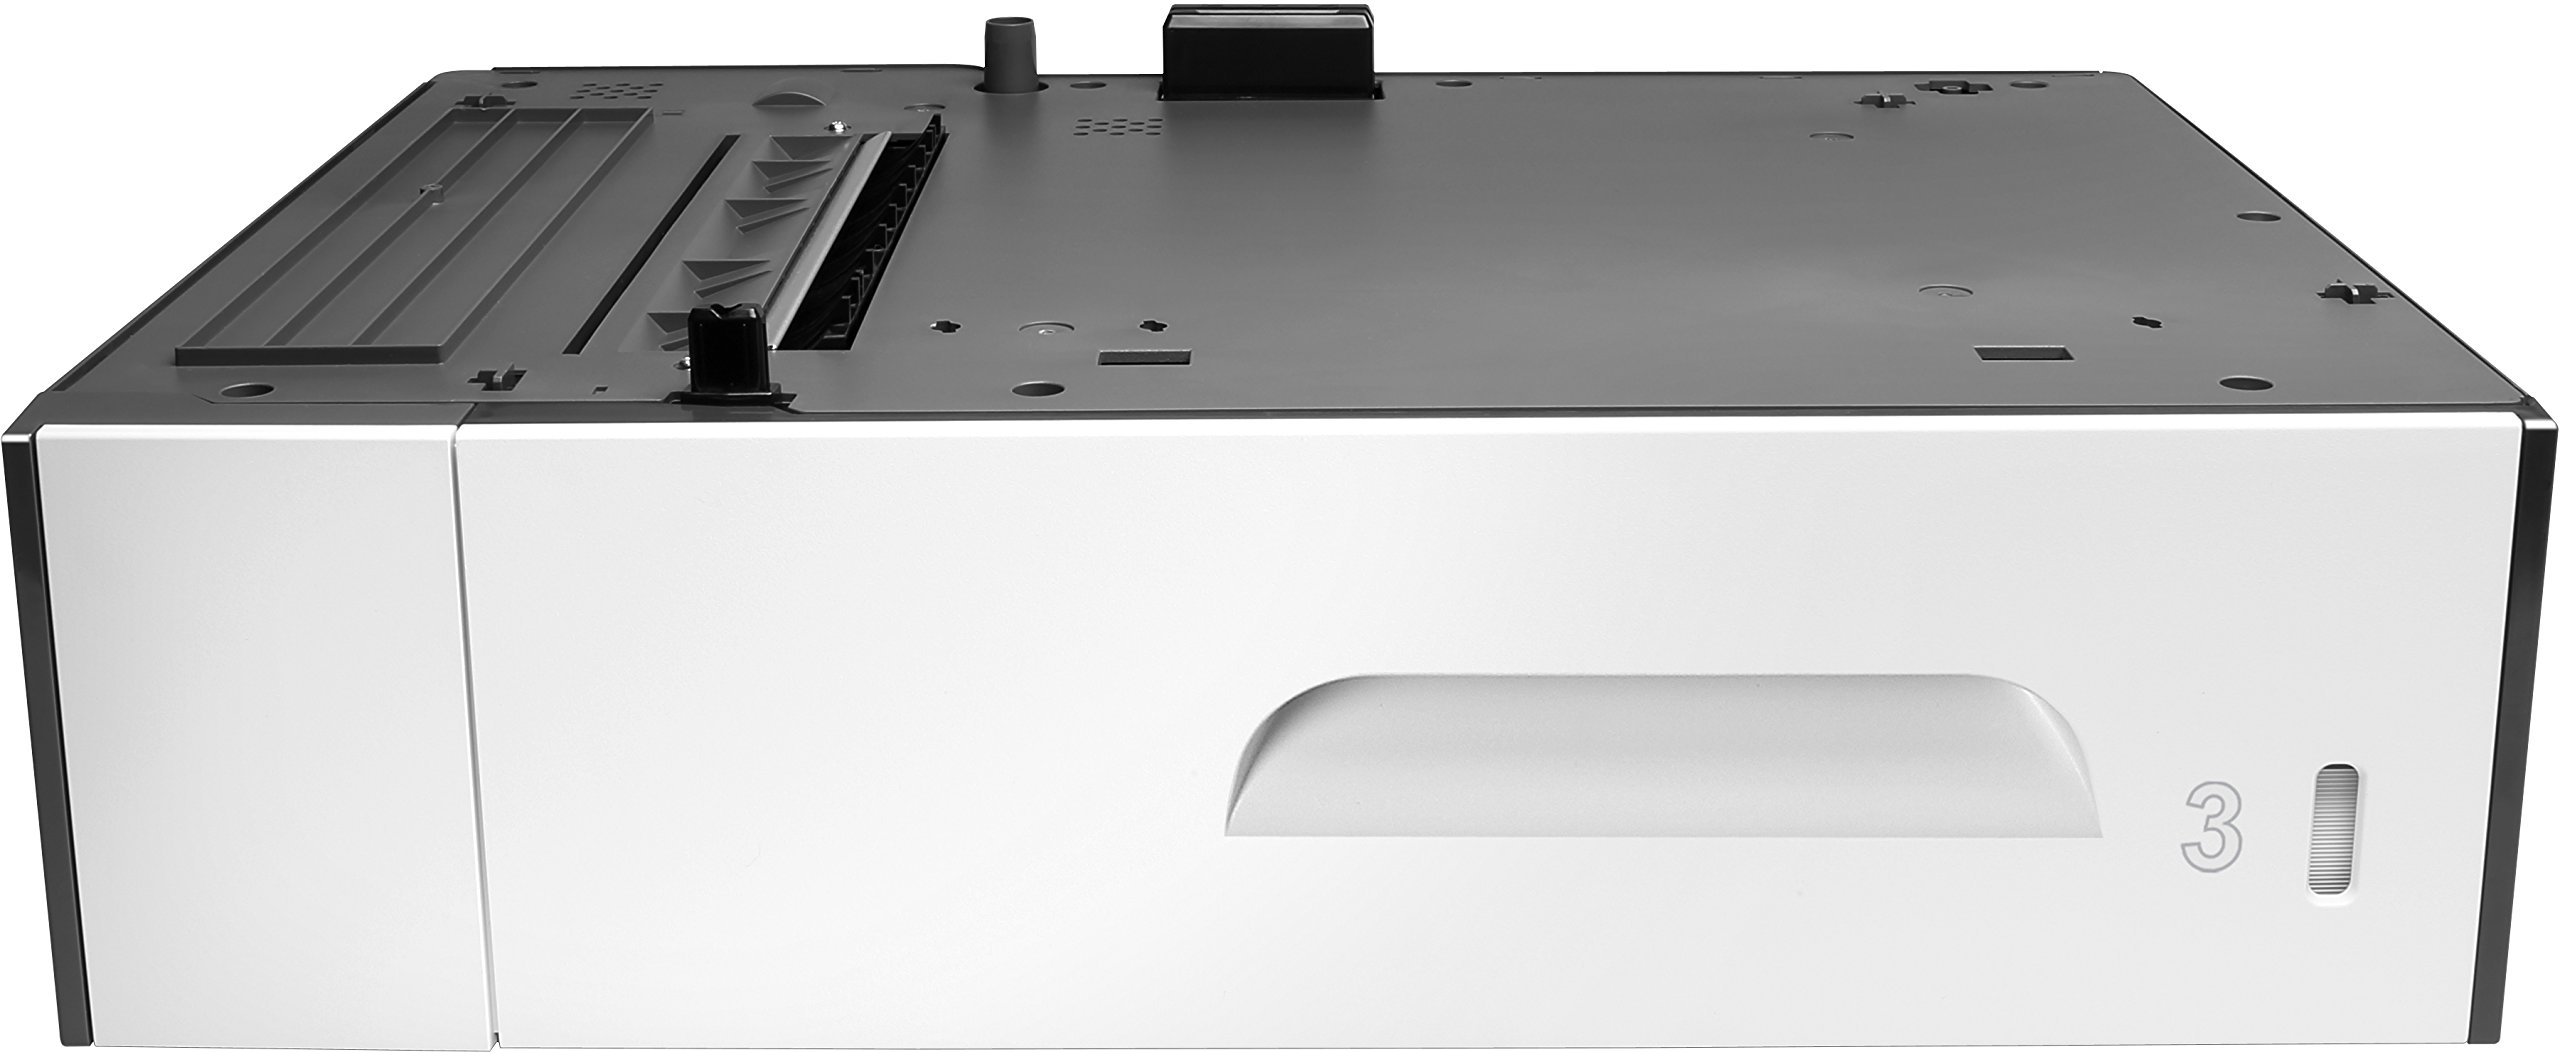 HP PageWide Enterprise 500-Sheet Paper Tray by HP (Image #3)